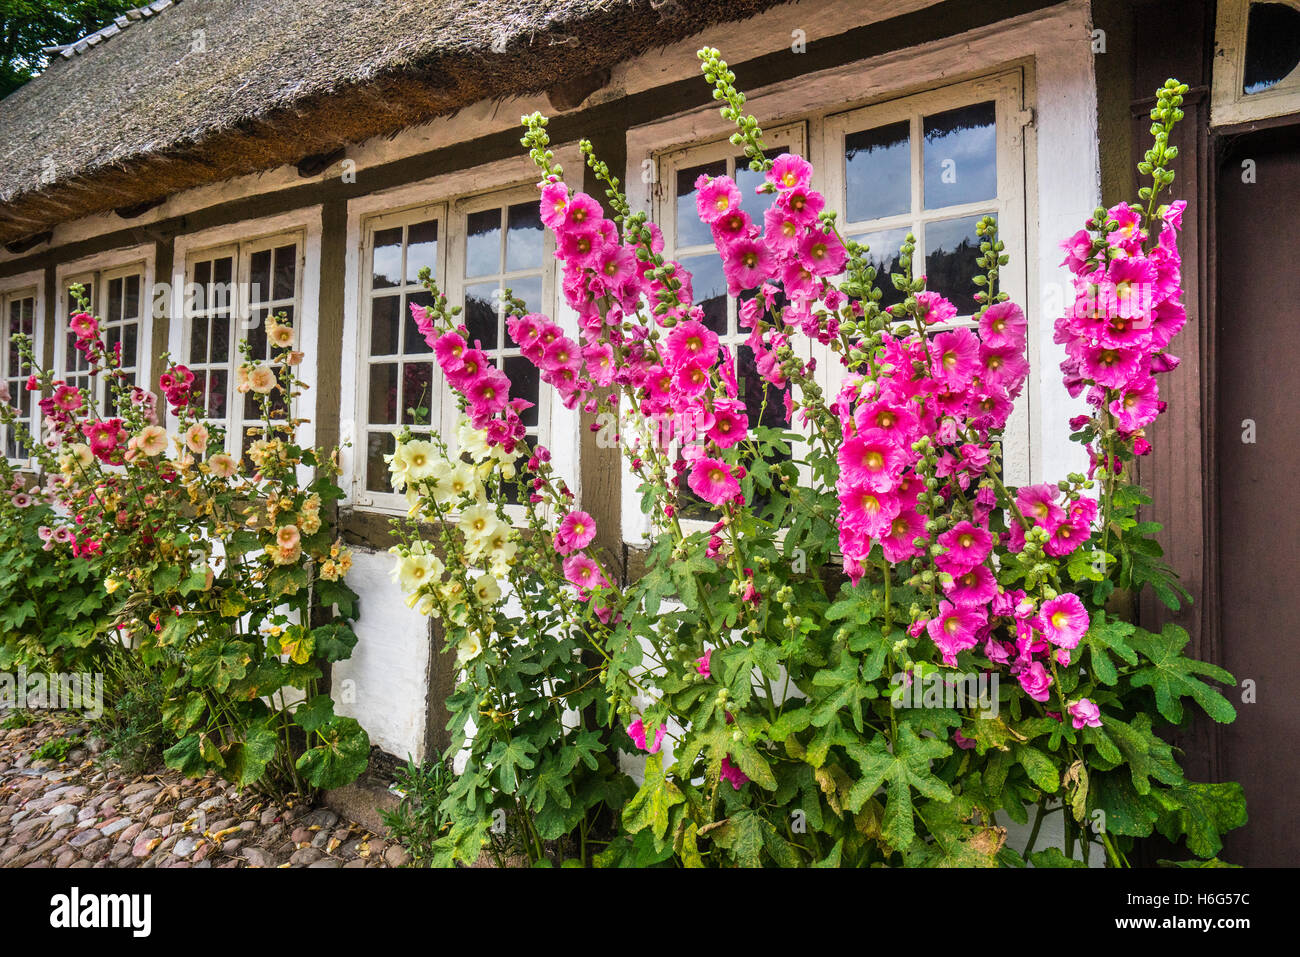 Denmark, Funen, Odense, Funen village open air museum, Malva flowers by the side of a traditional timber framed - Stock Image